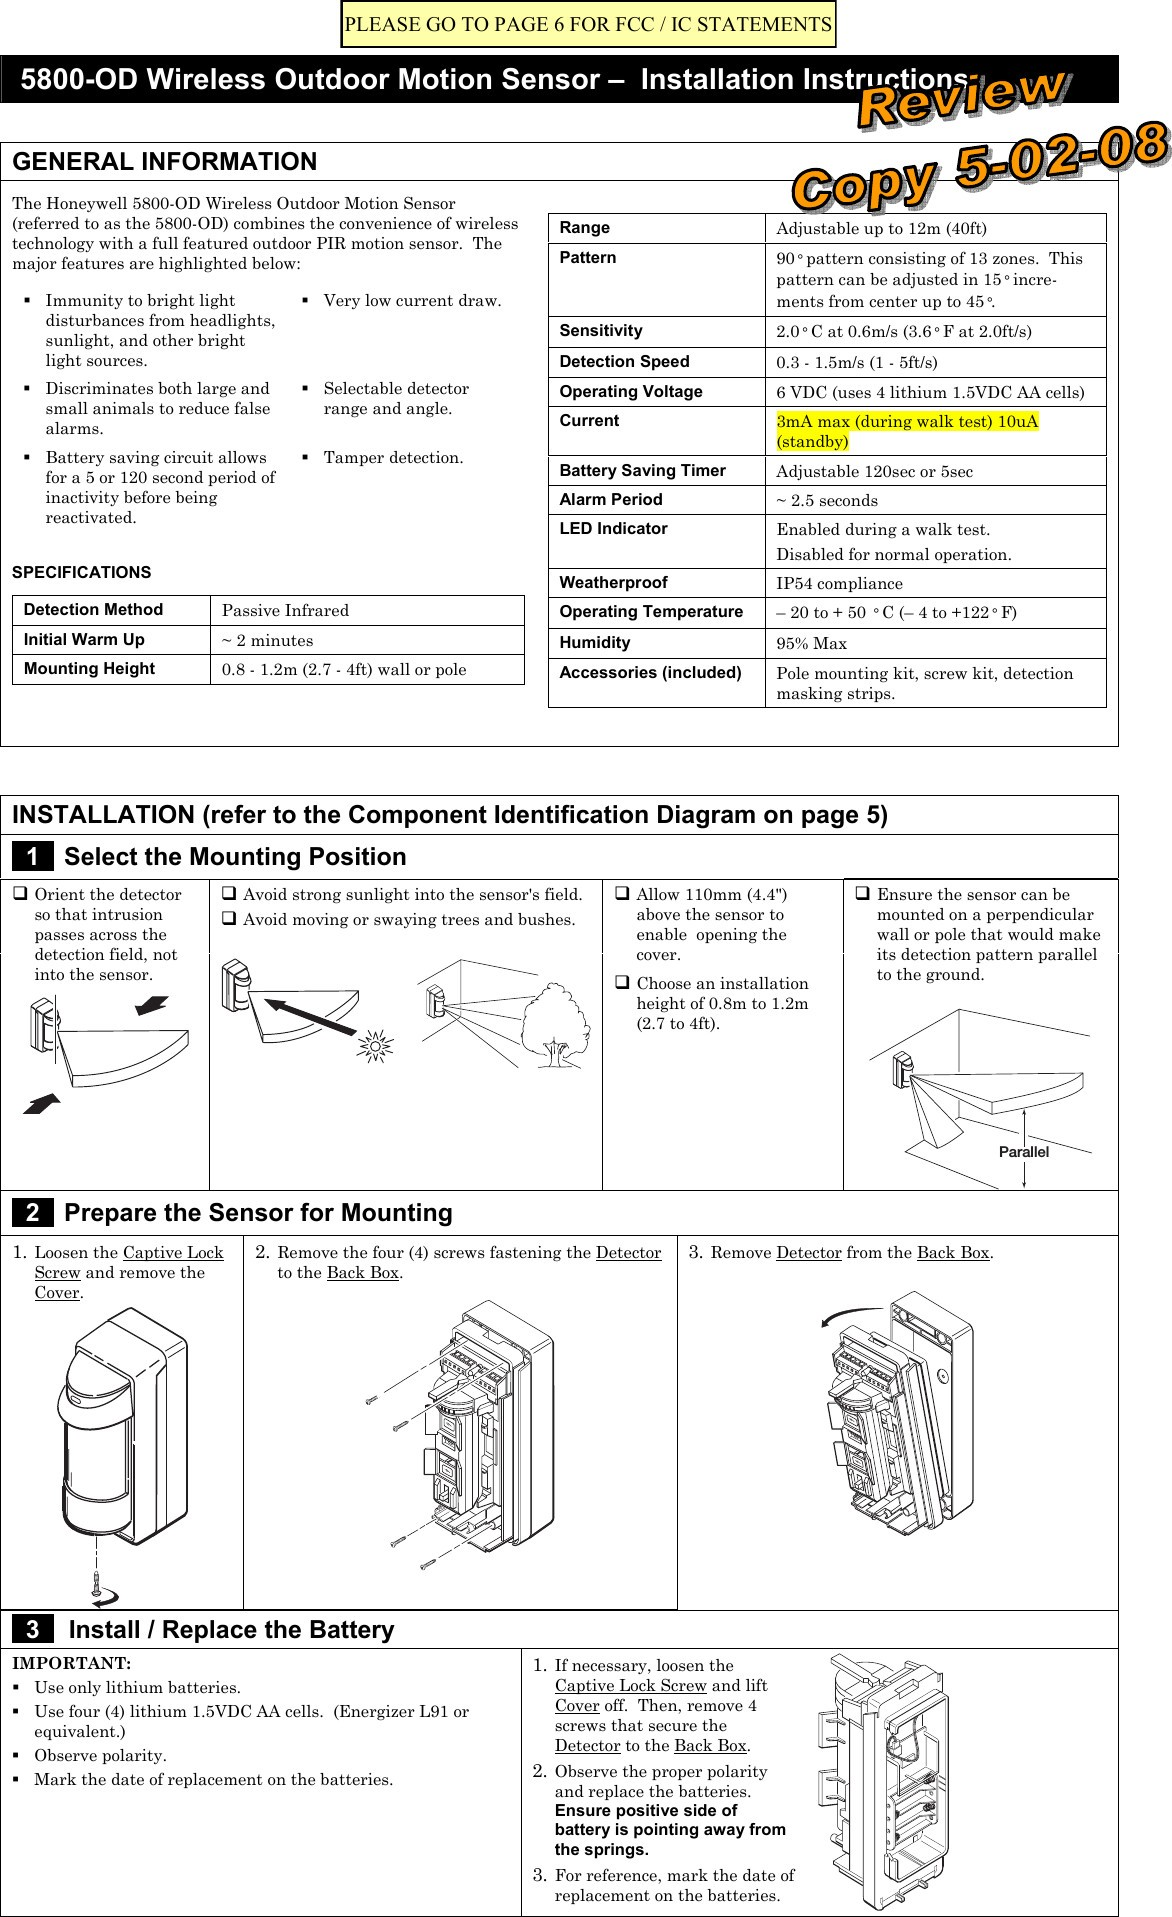 Wiring Diagram for Outdoor Security Light 2019 8dl5800pir Od Security Transmitter User Manual 5890 Od Wireless